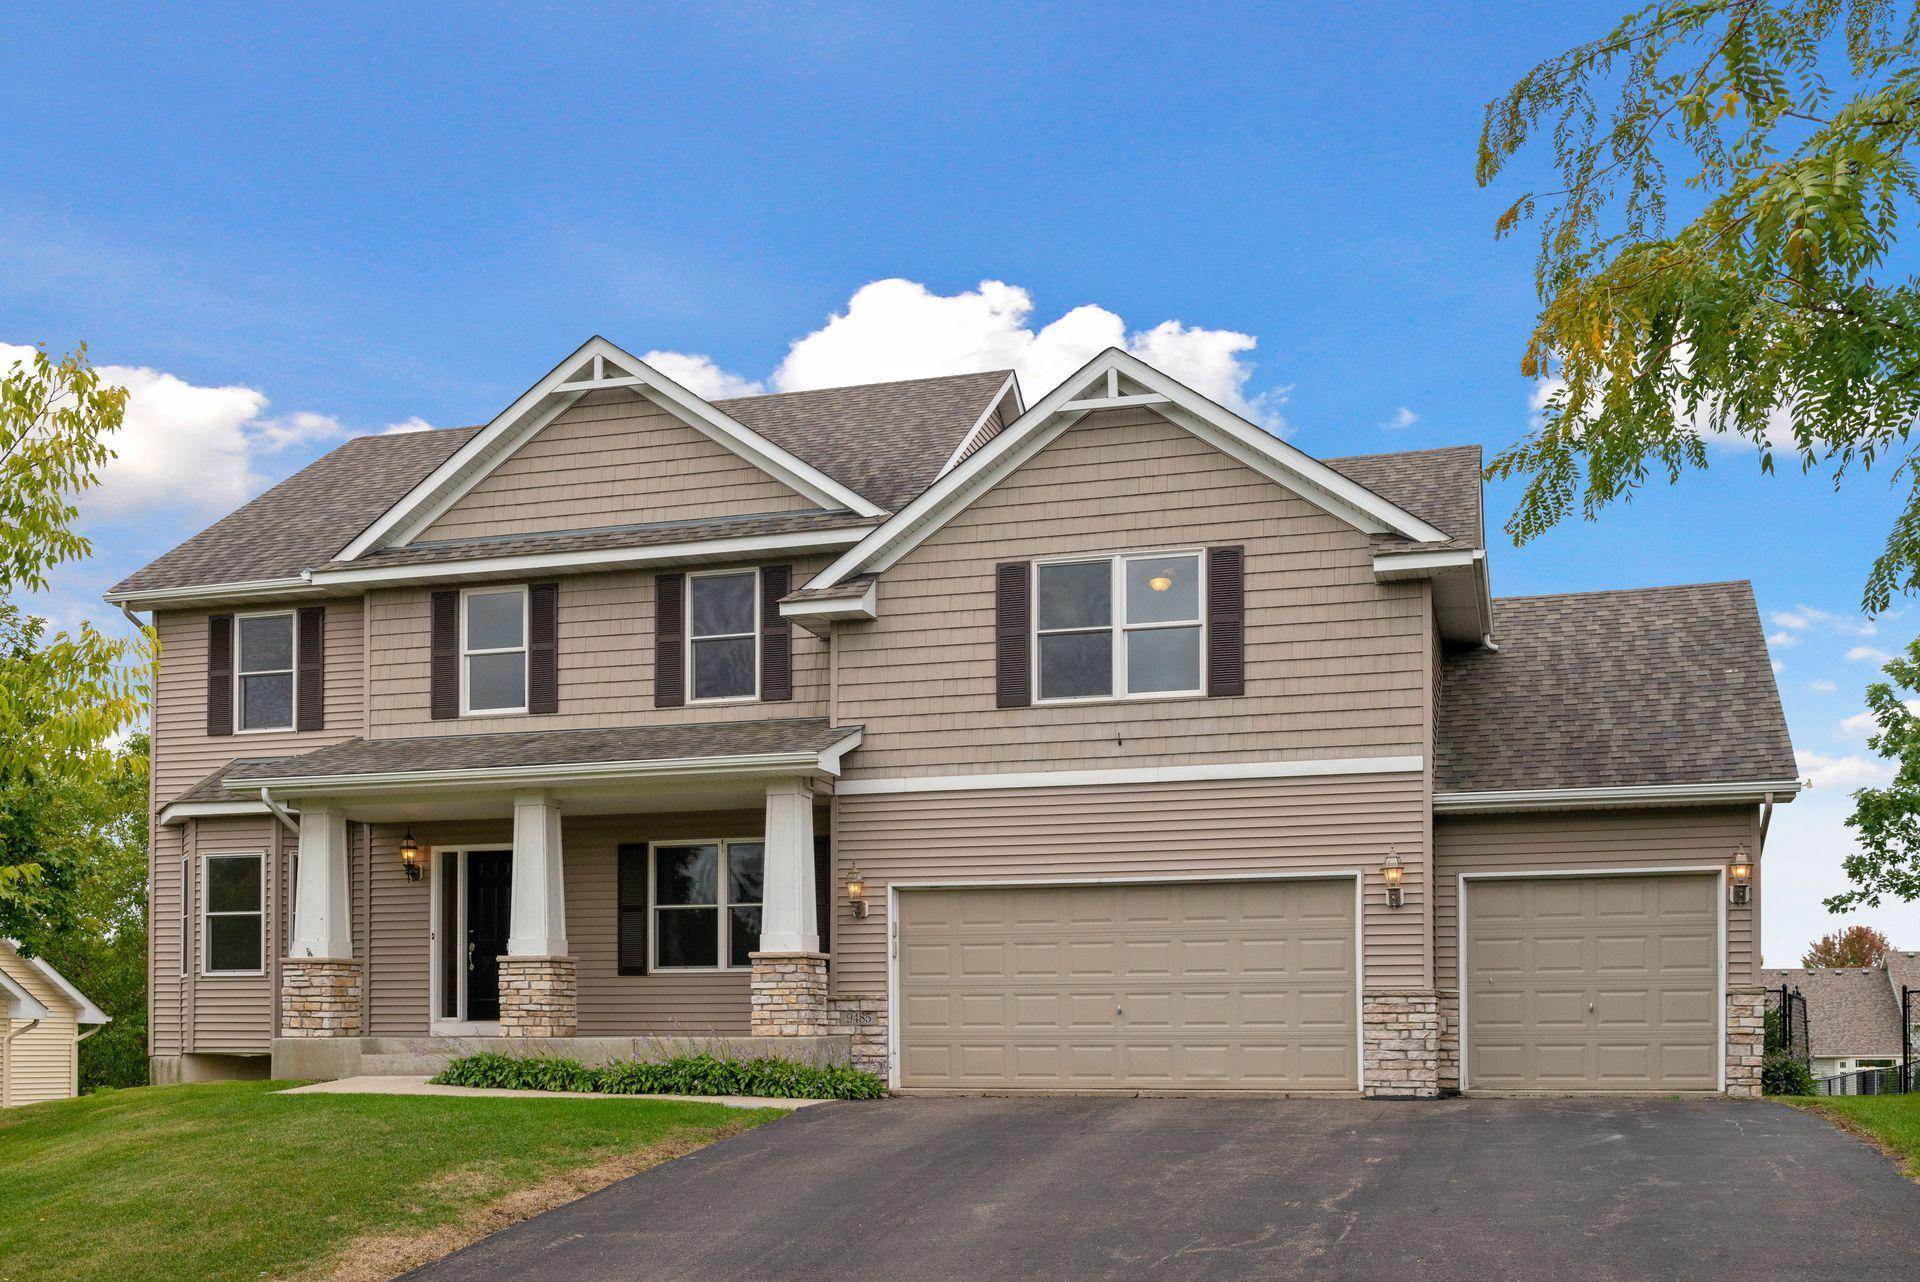 9485 Pheasant Crossing Property Photo - Minnetrista, MN real estate listing